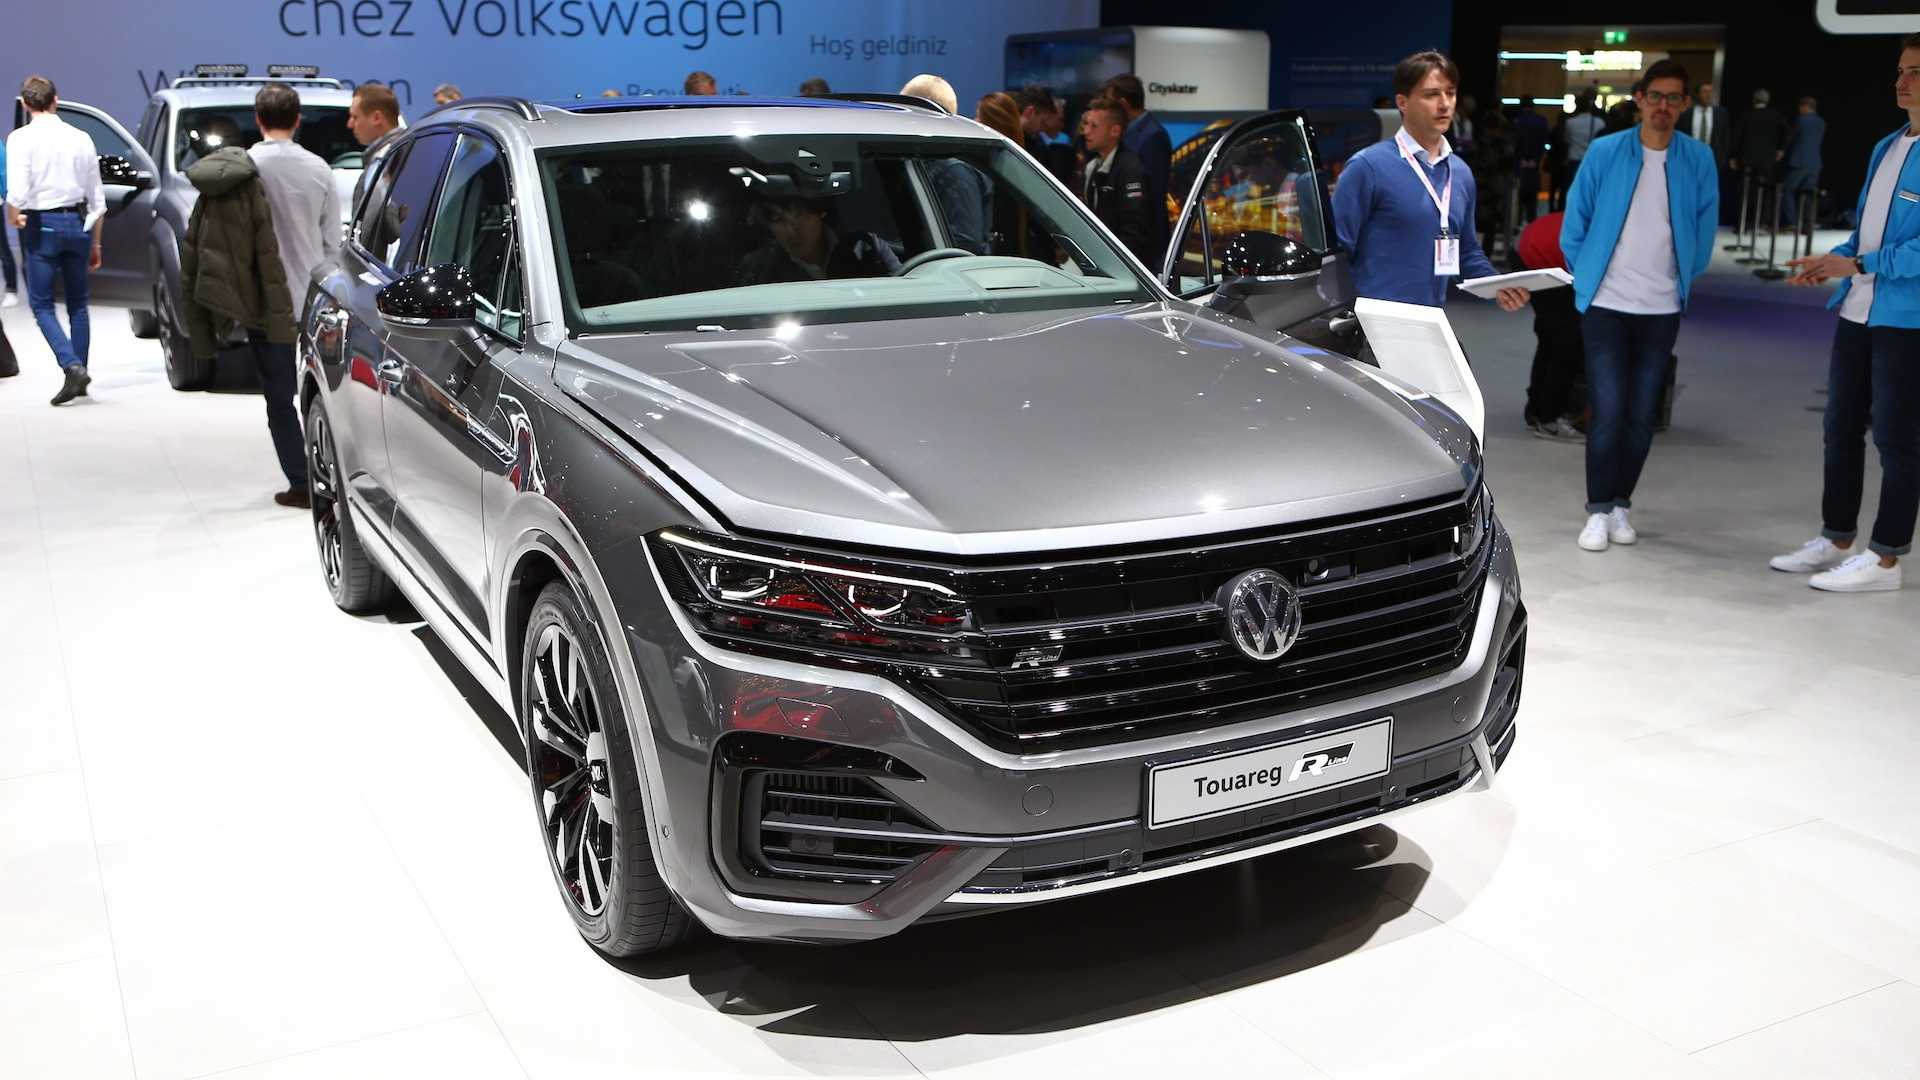 89 New Volkswagen Touareg 2020 Performance for Volkswagen Touareg 2020